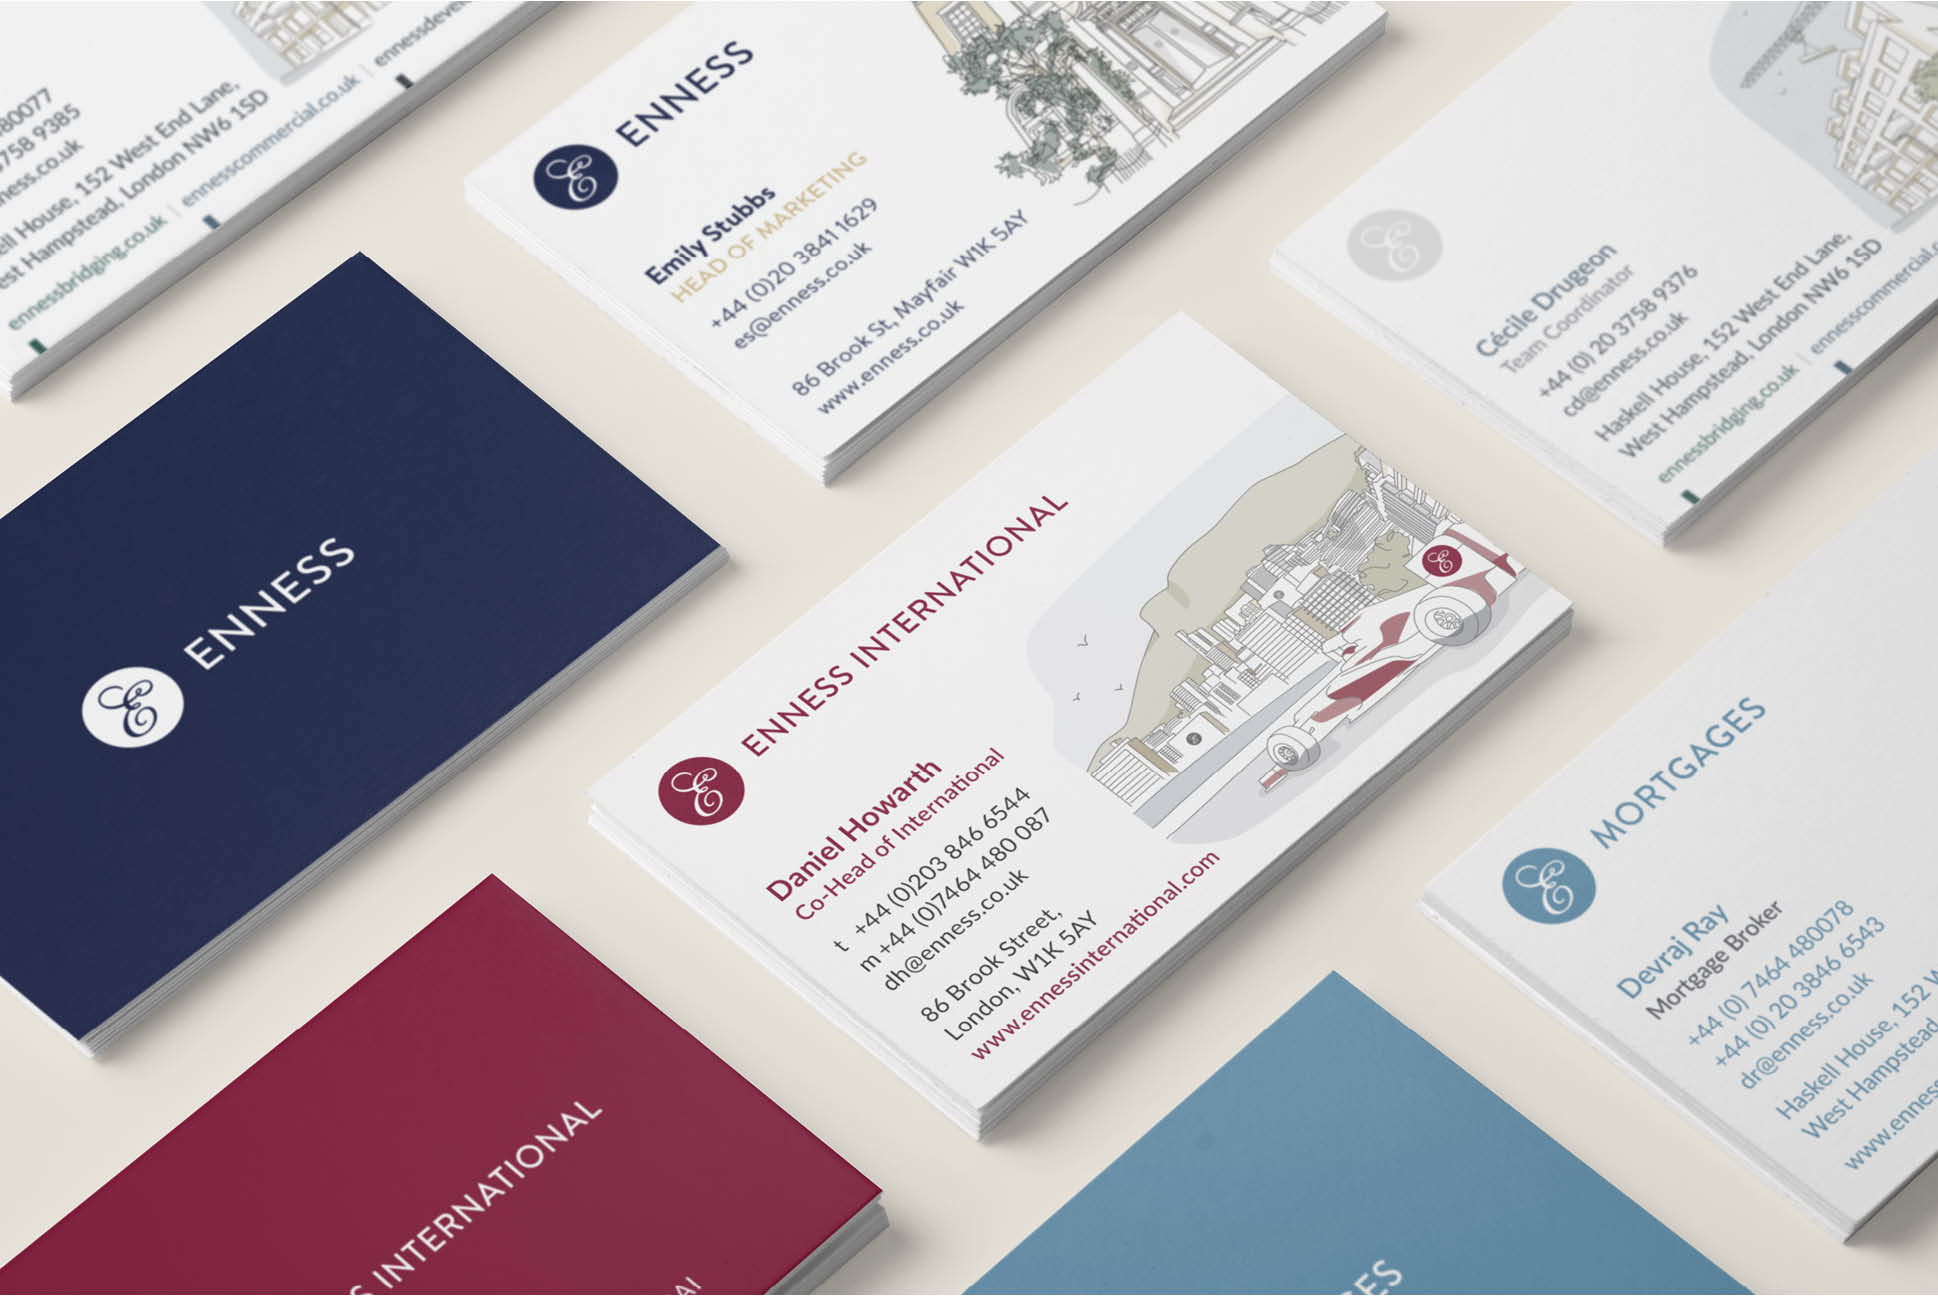 Enness Business cards   Enness Website   Independent Marketing Brand Audit and Branding Refresh Services   IM London